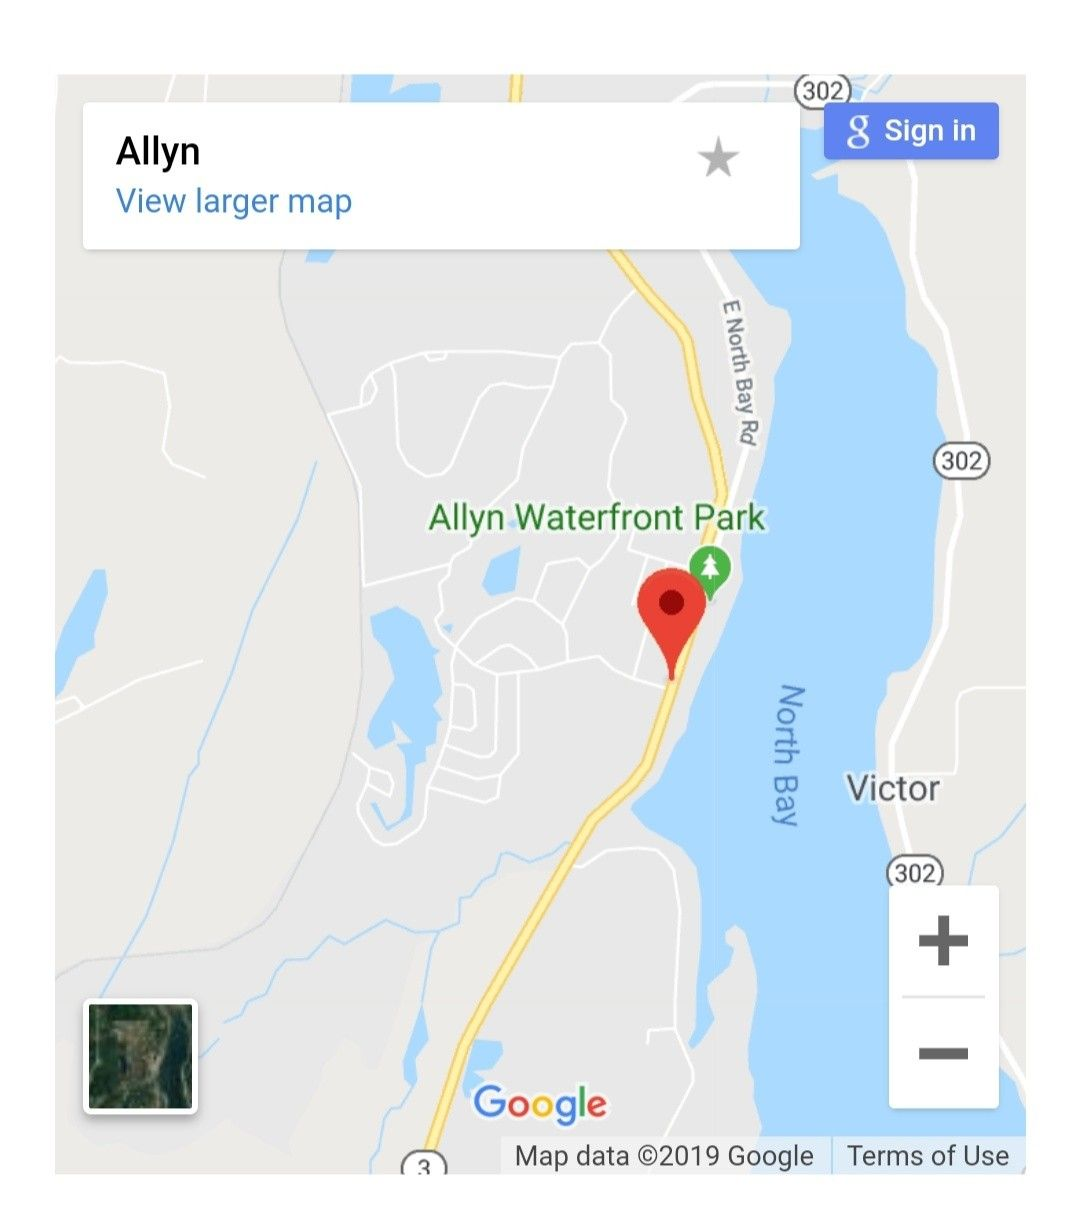 Maps of allyn the city of Washington USA. Get the mapquest ...